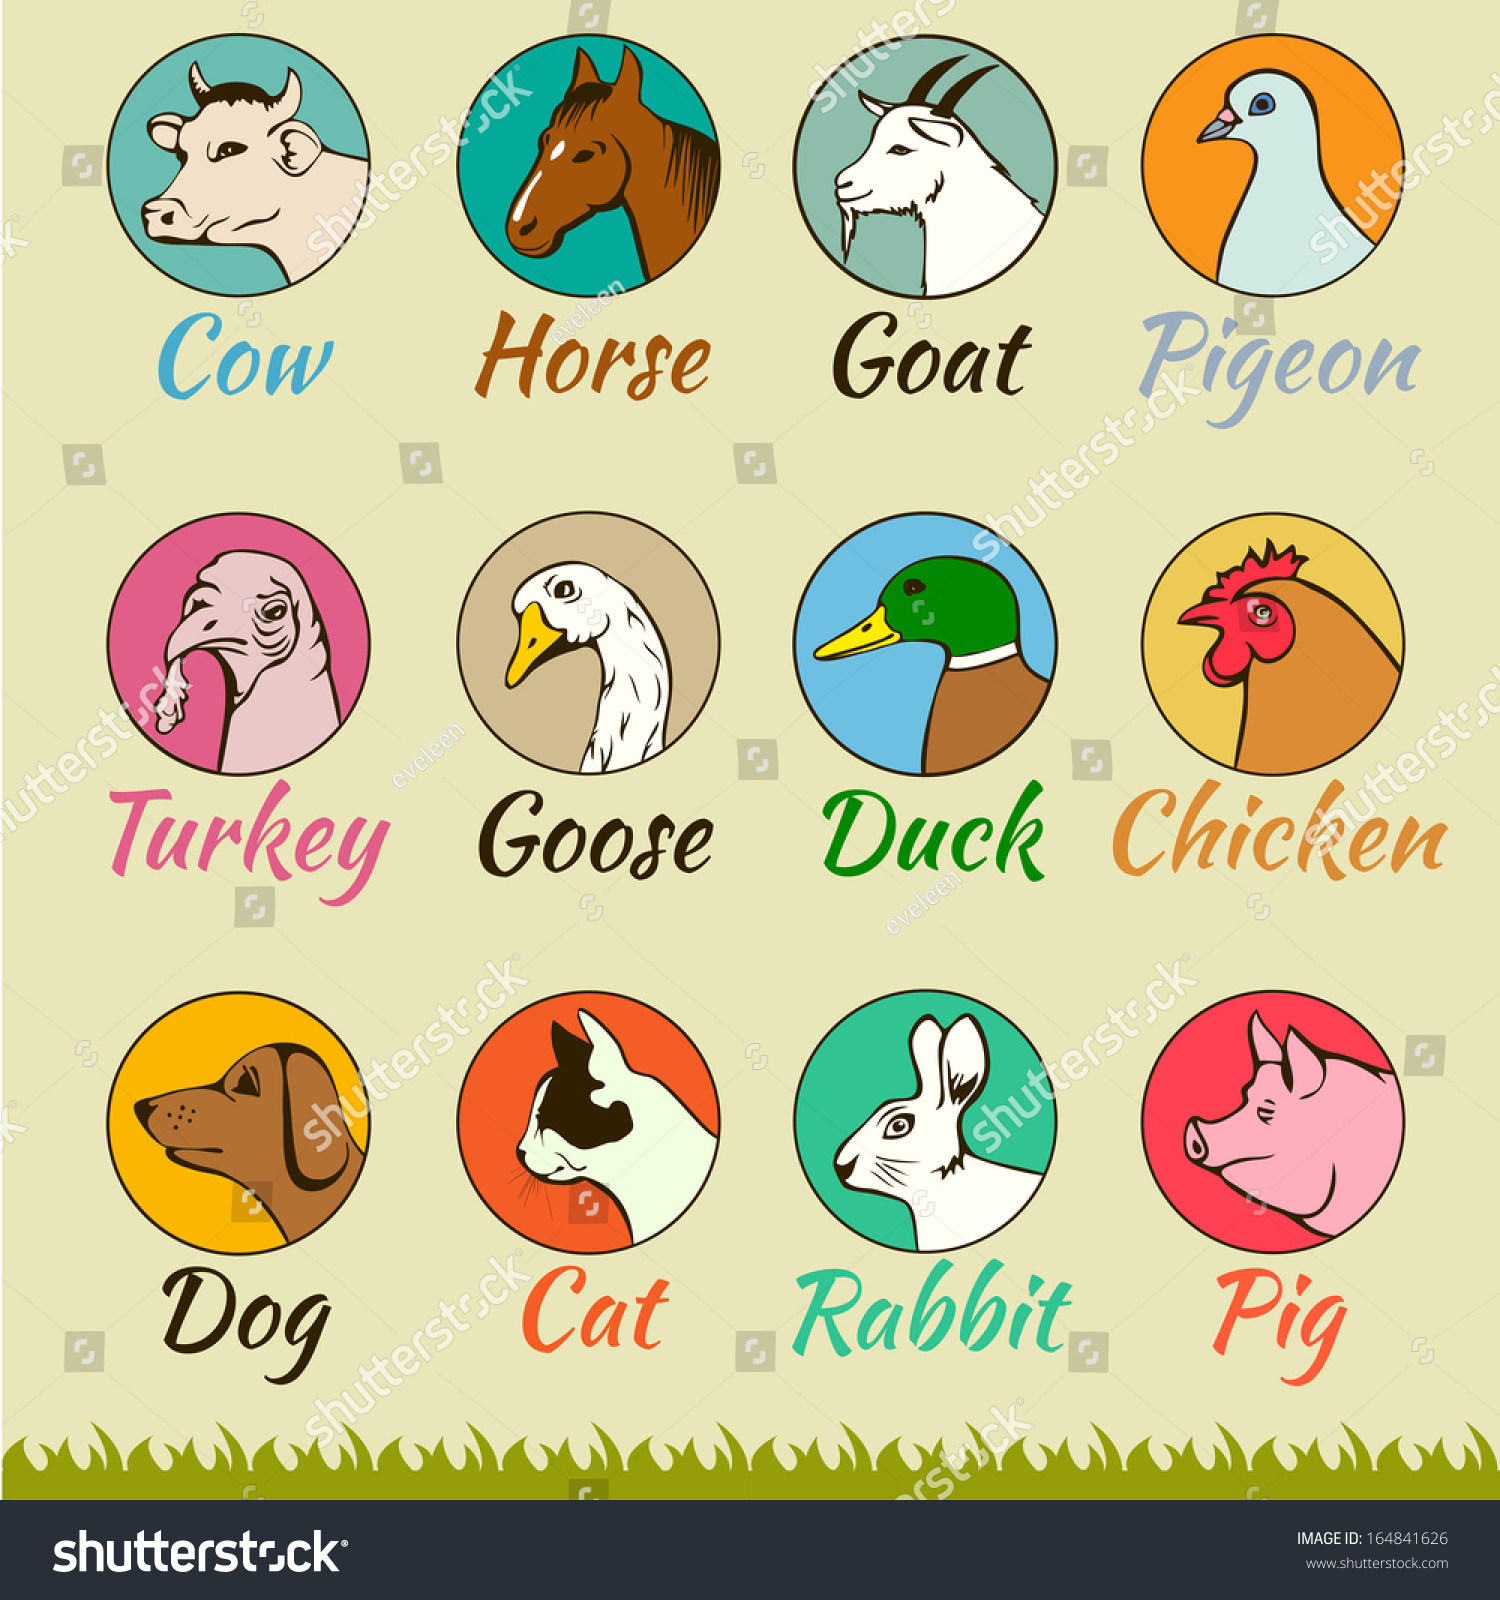 Agri cultures project logo duckdog design - Farm Animal Heads Isolated Cat Dog Horse Pig Cow Goat Turkey Chicken Goose Duck Pigeon